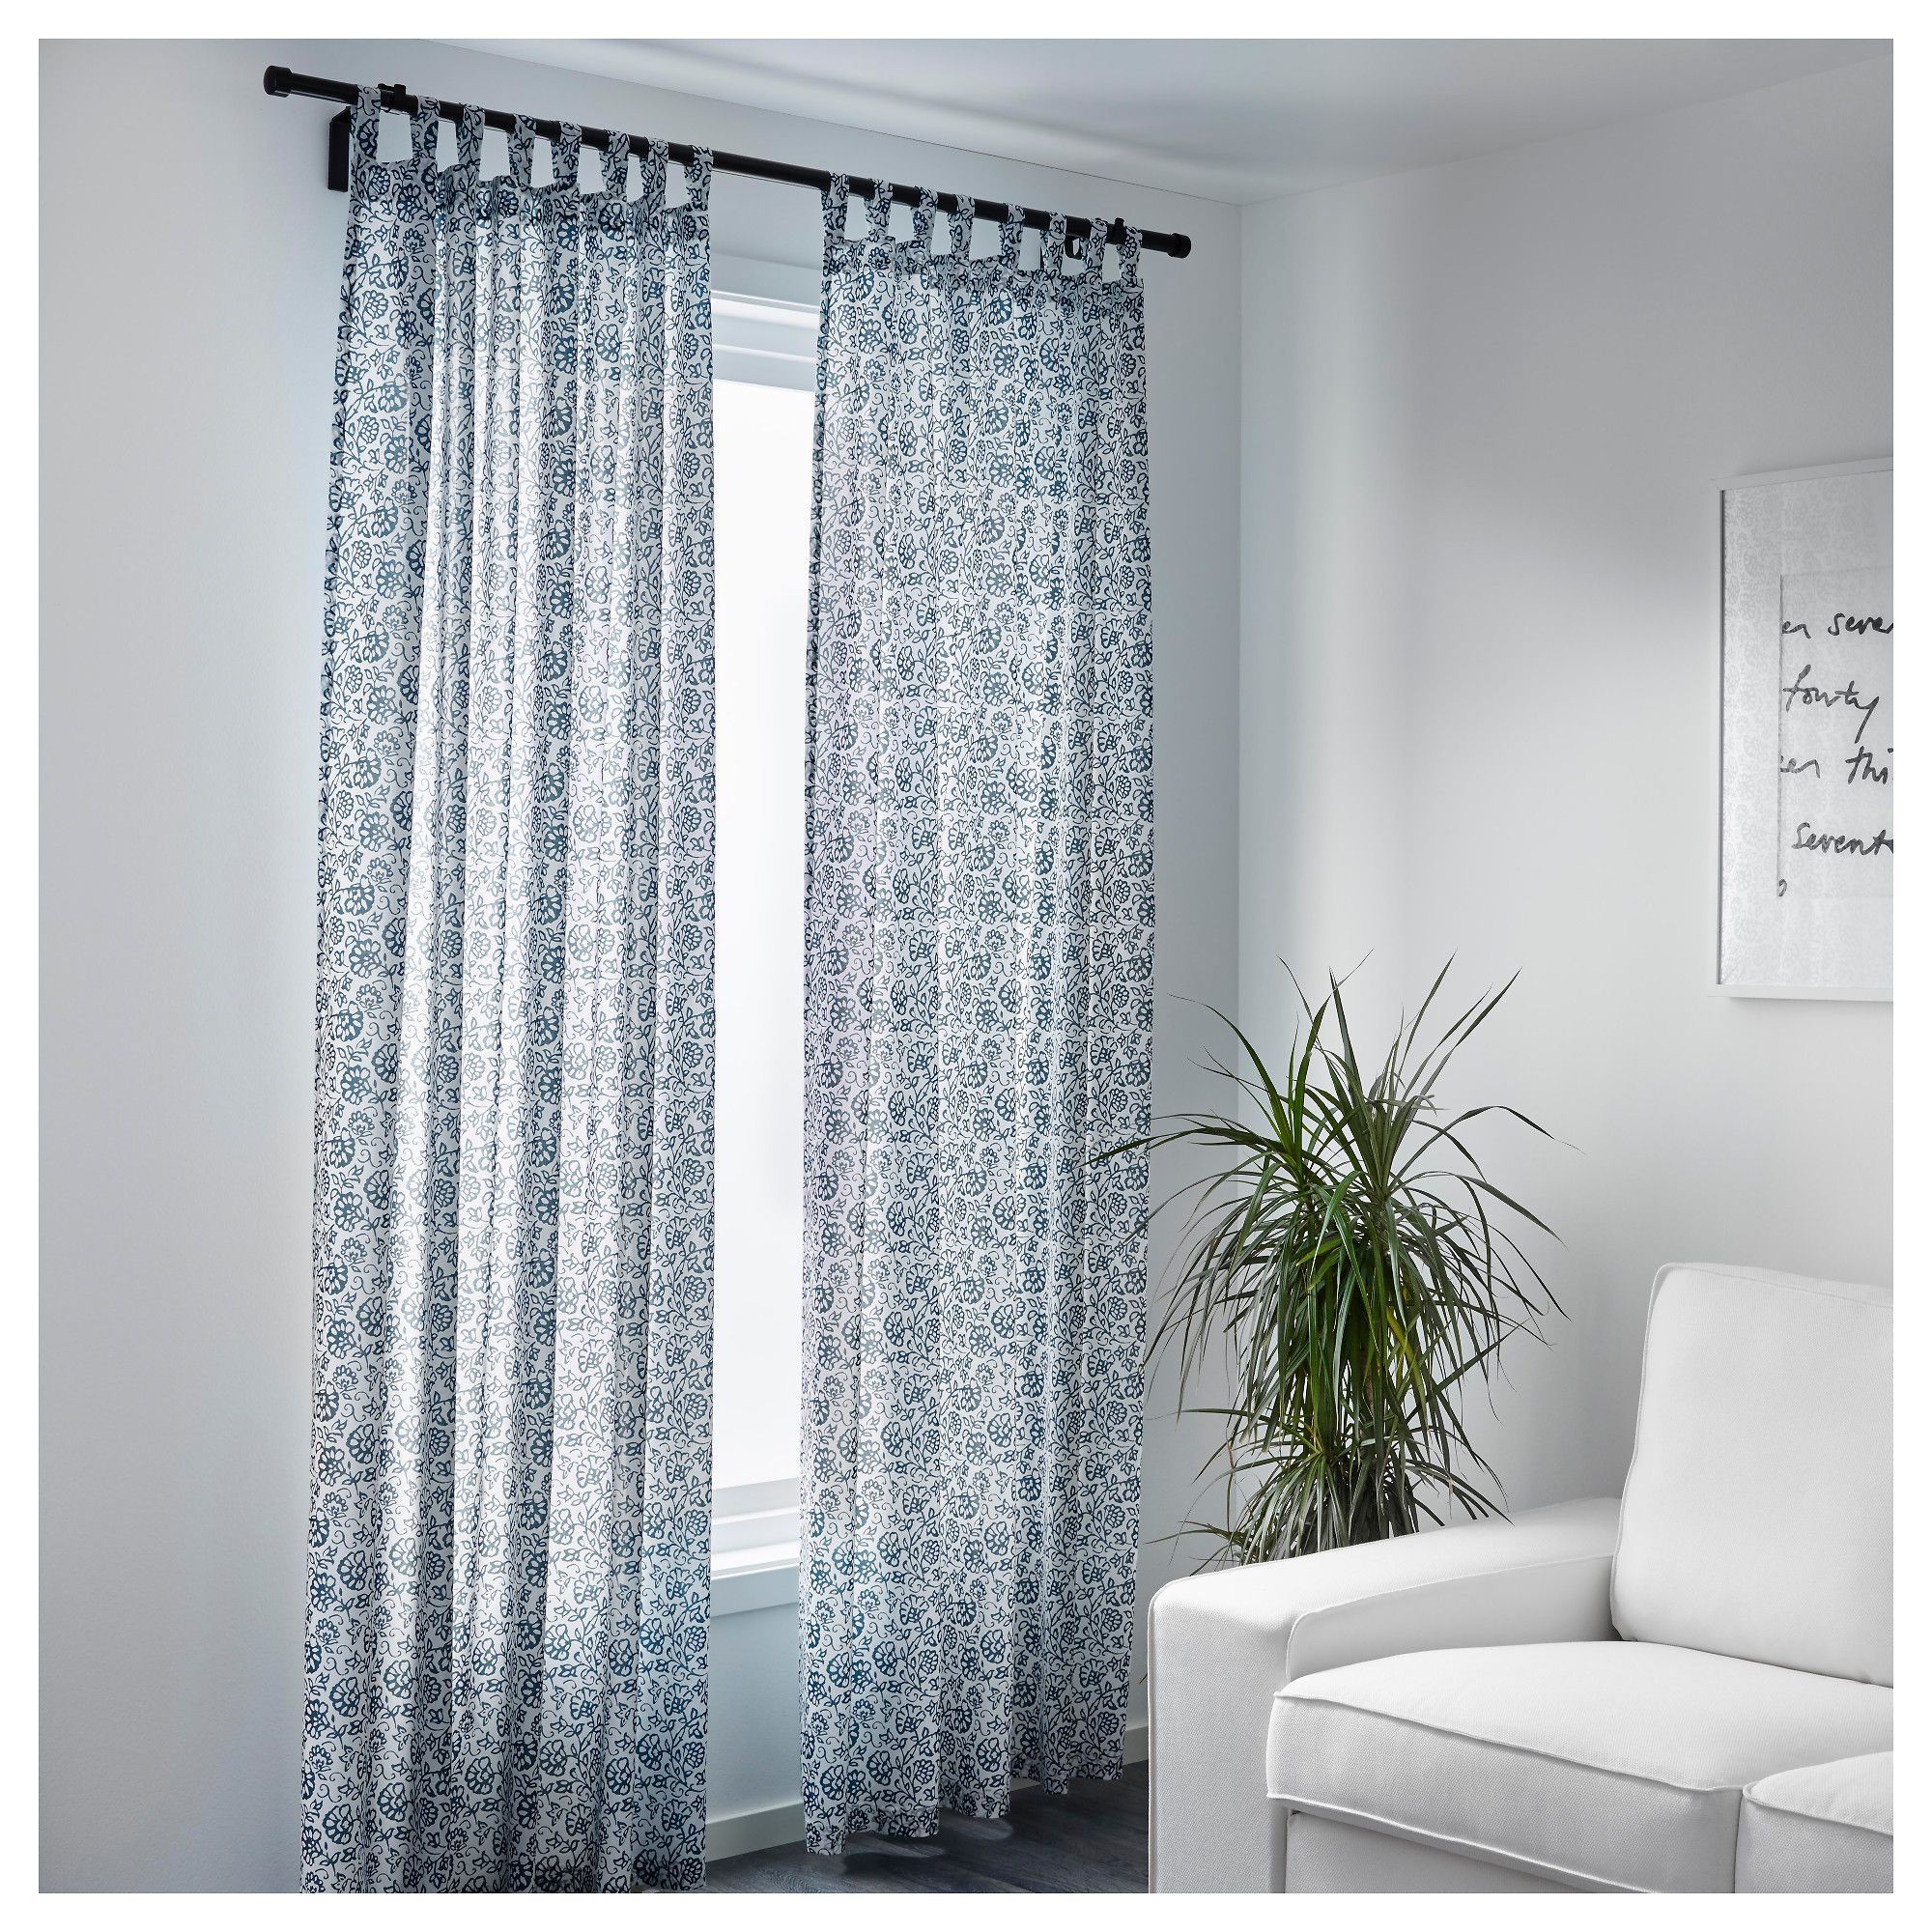 I Think These Ikea MJÖLKÖRT Curtains Would Look Nice In My